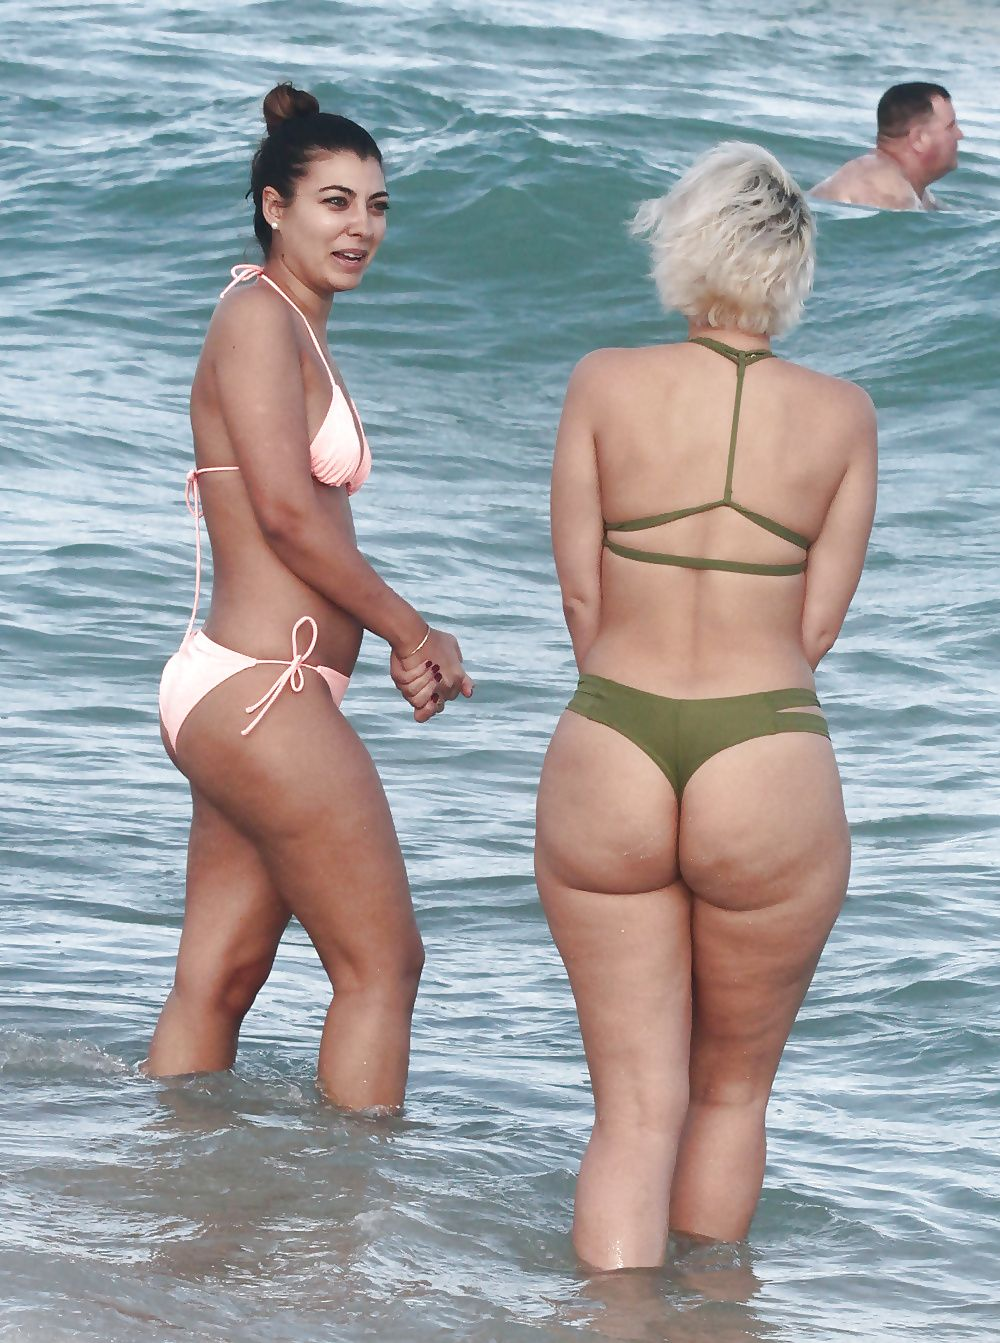 candid bikini ass Explore Bikinis and more!